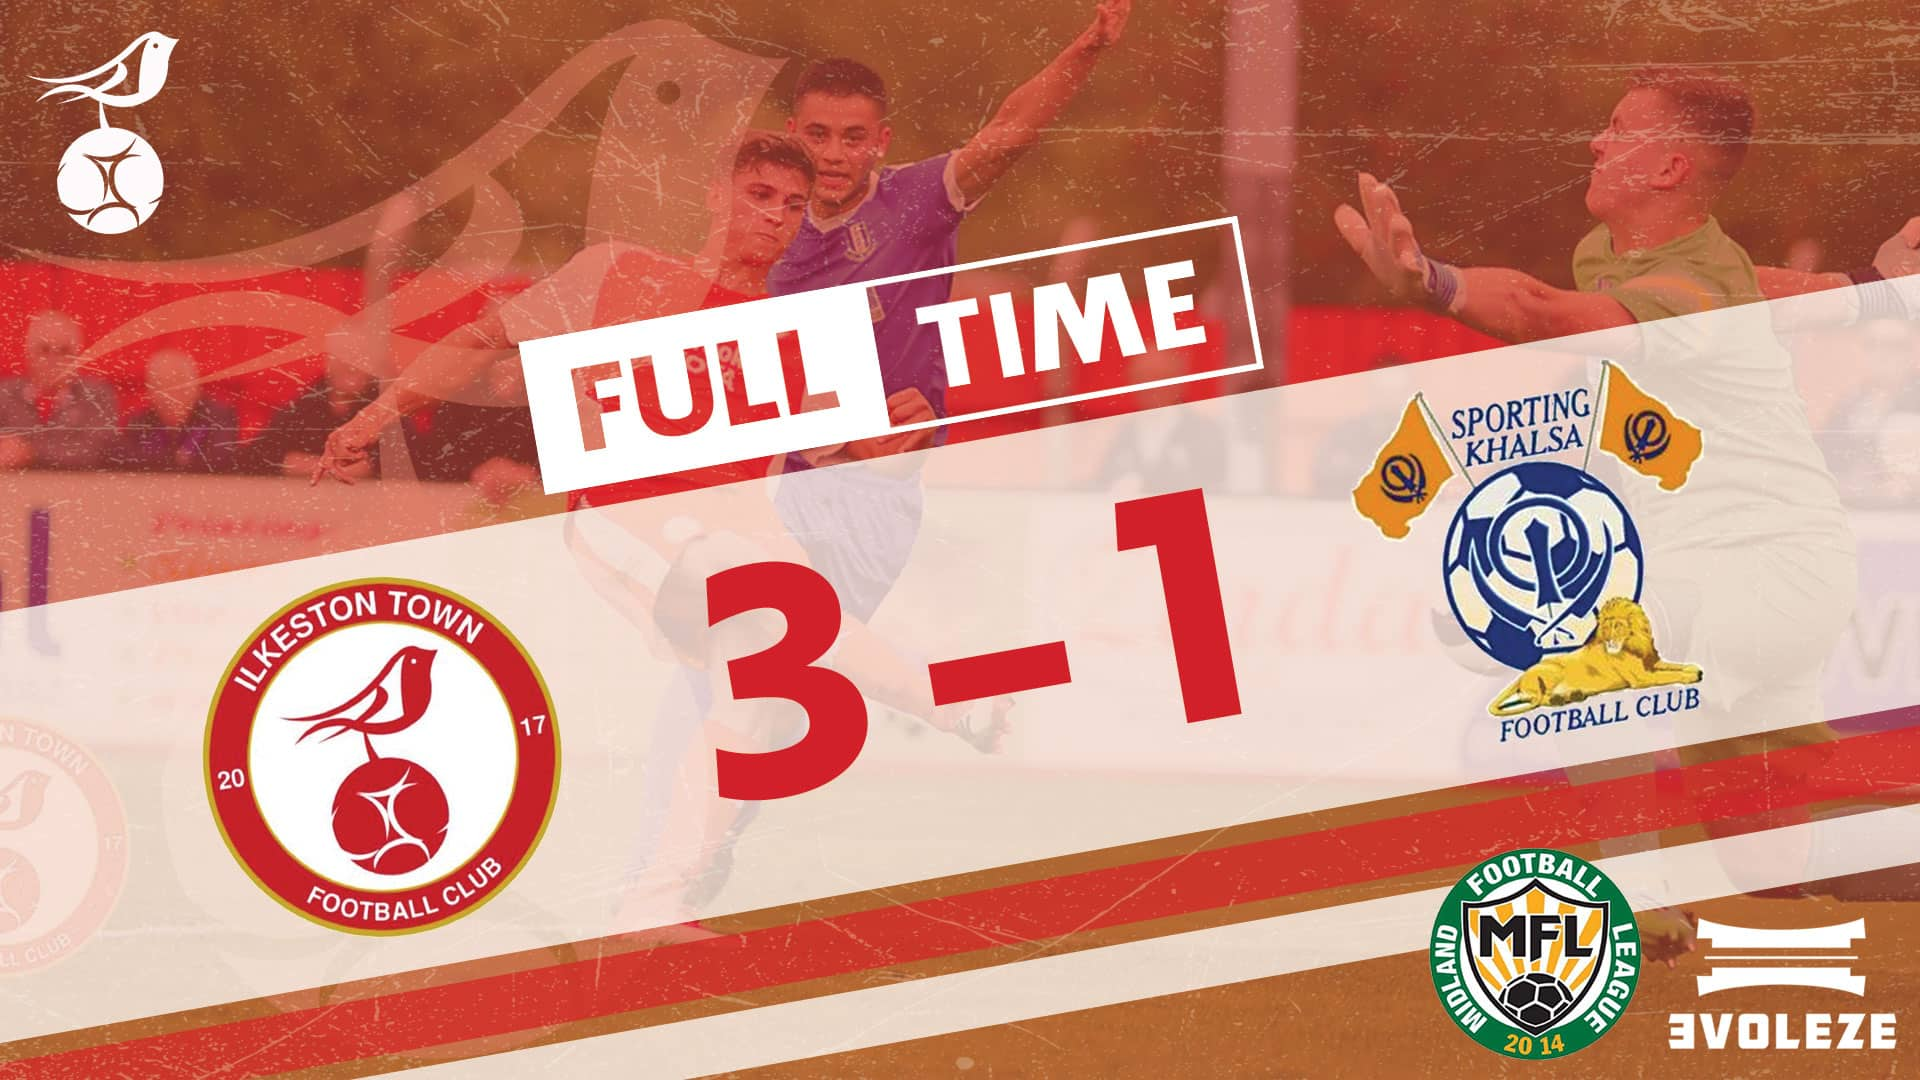 full time Ilkeston Town FC